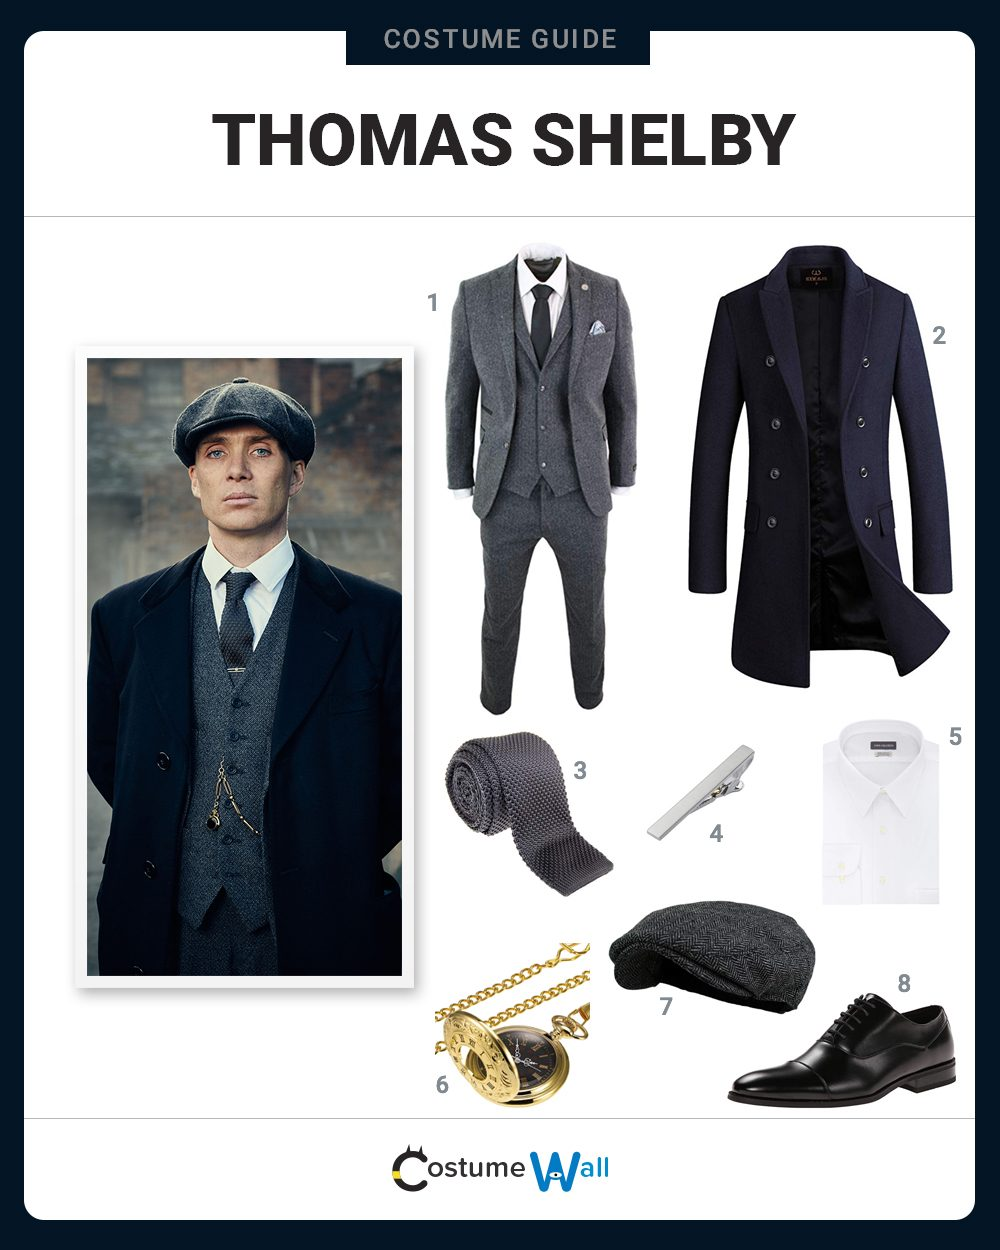 Thomas Shelby Costume Guide